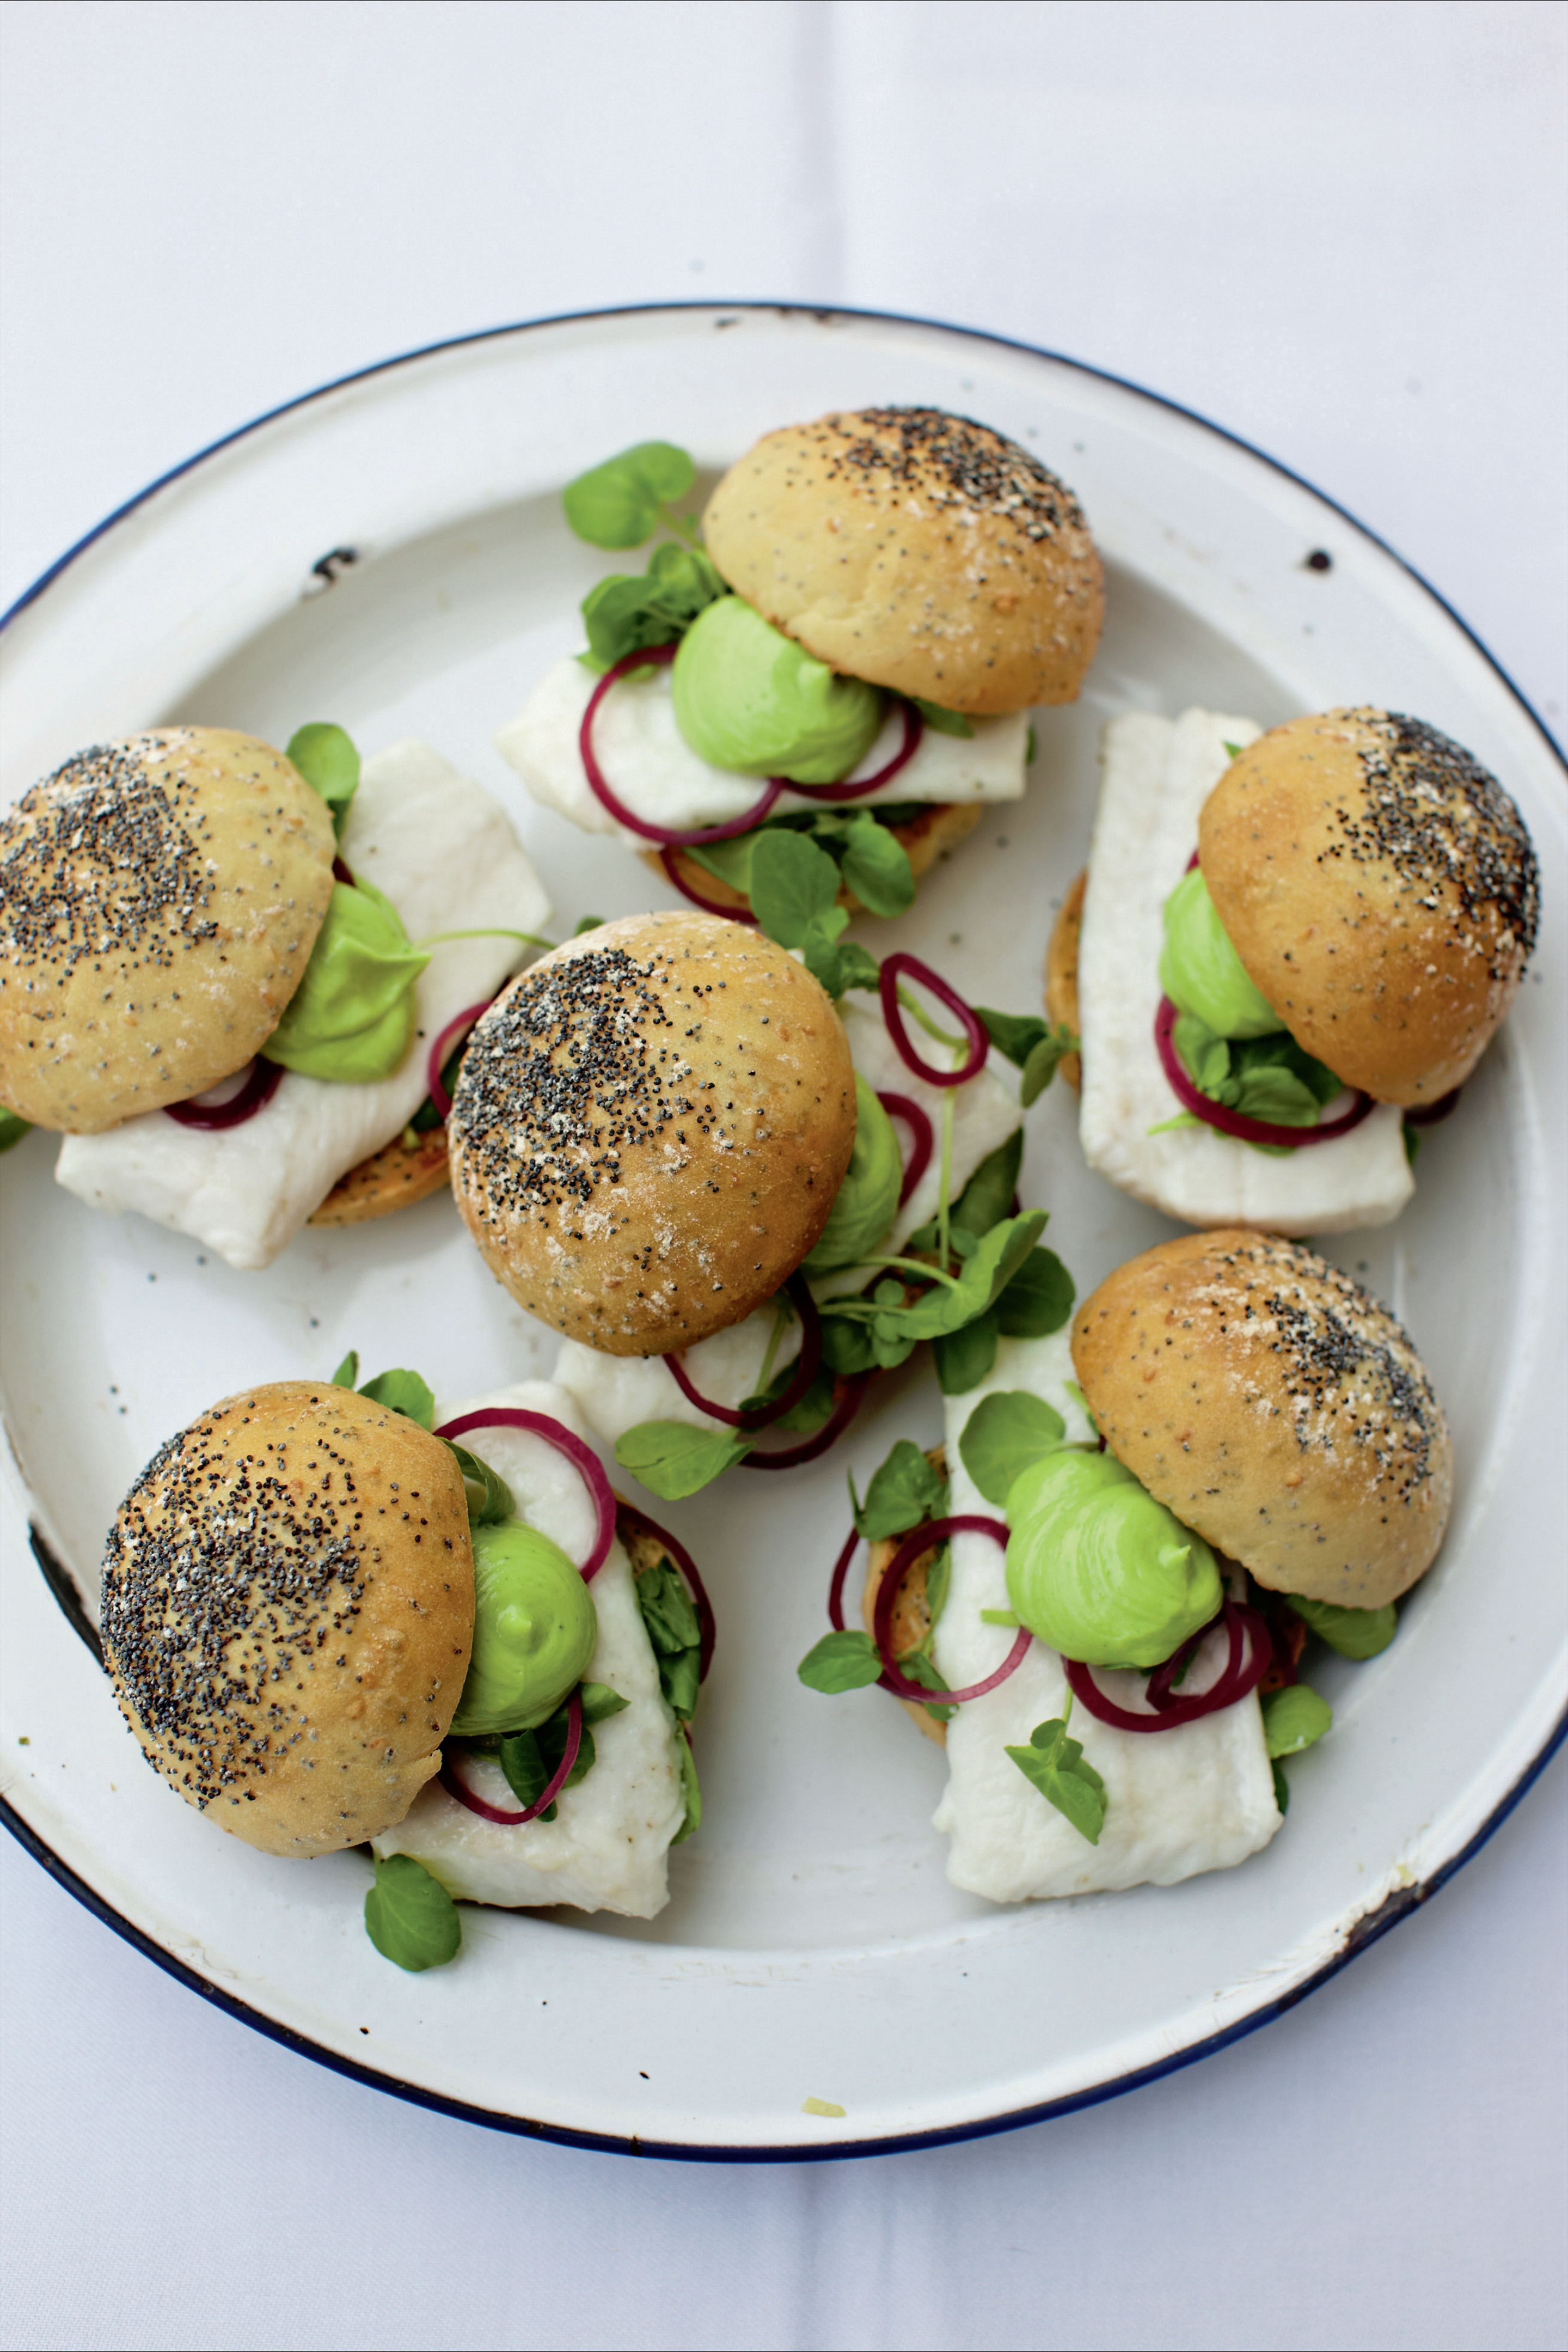 Megrim in a roll with watercress, shallot and tarragon mayonnaise